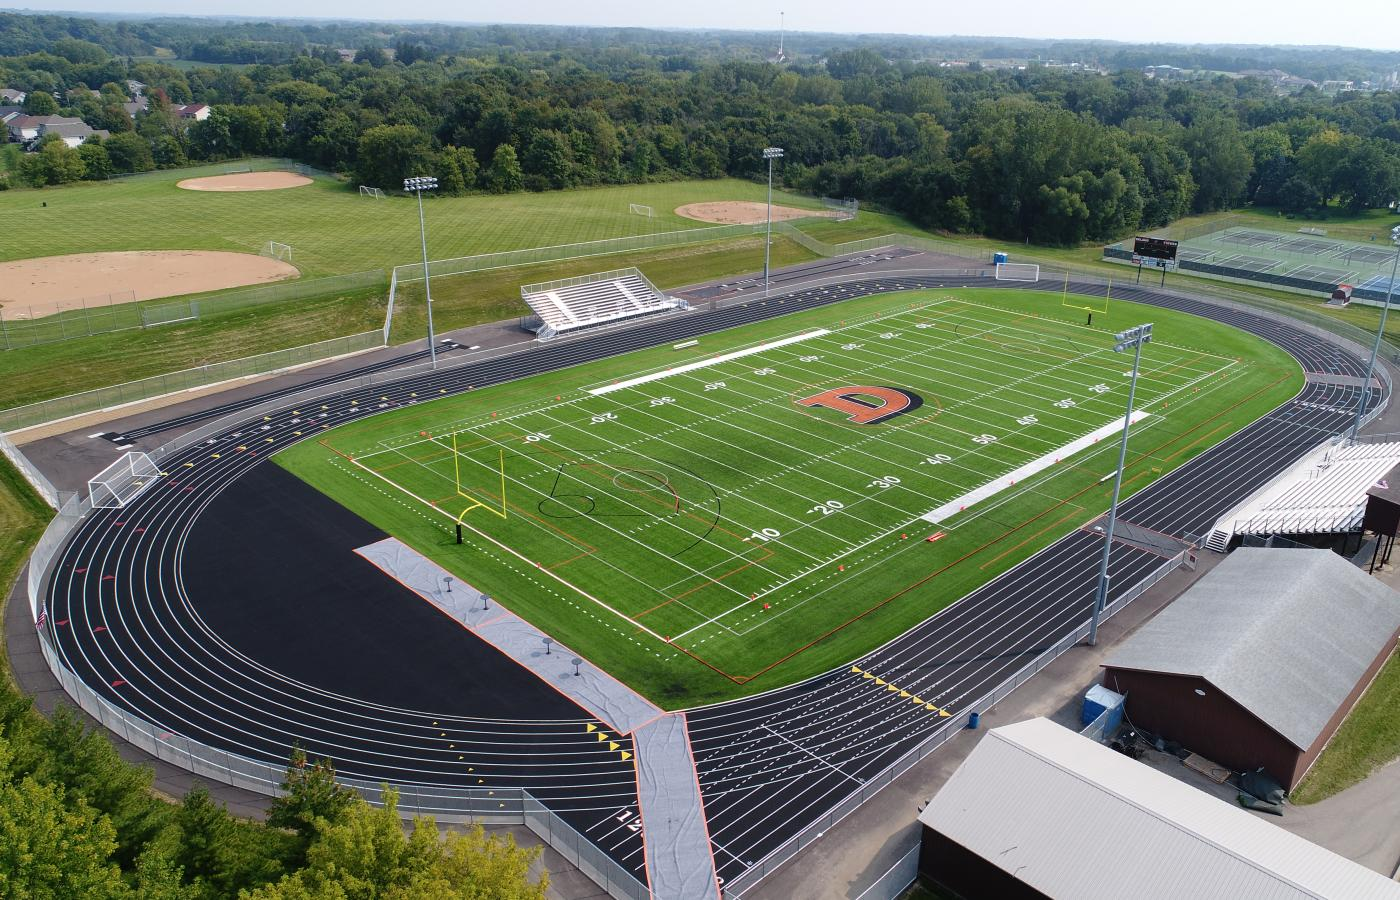 Delano High School Synthetic Turf Fields